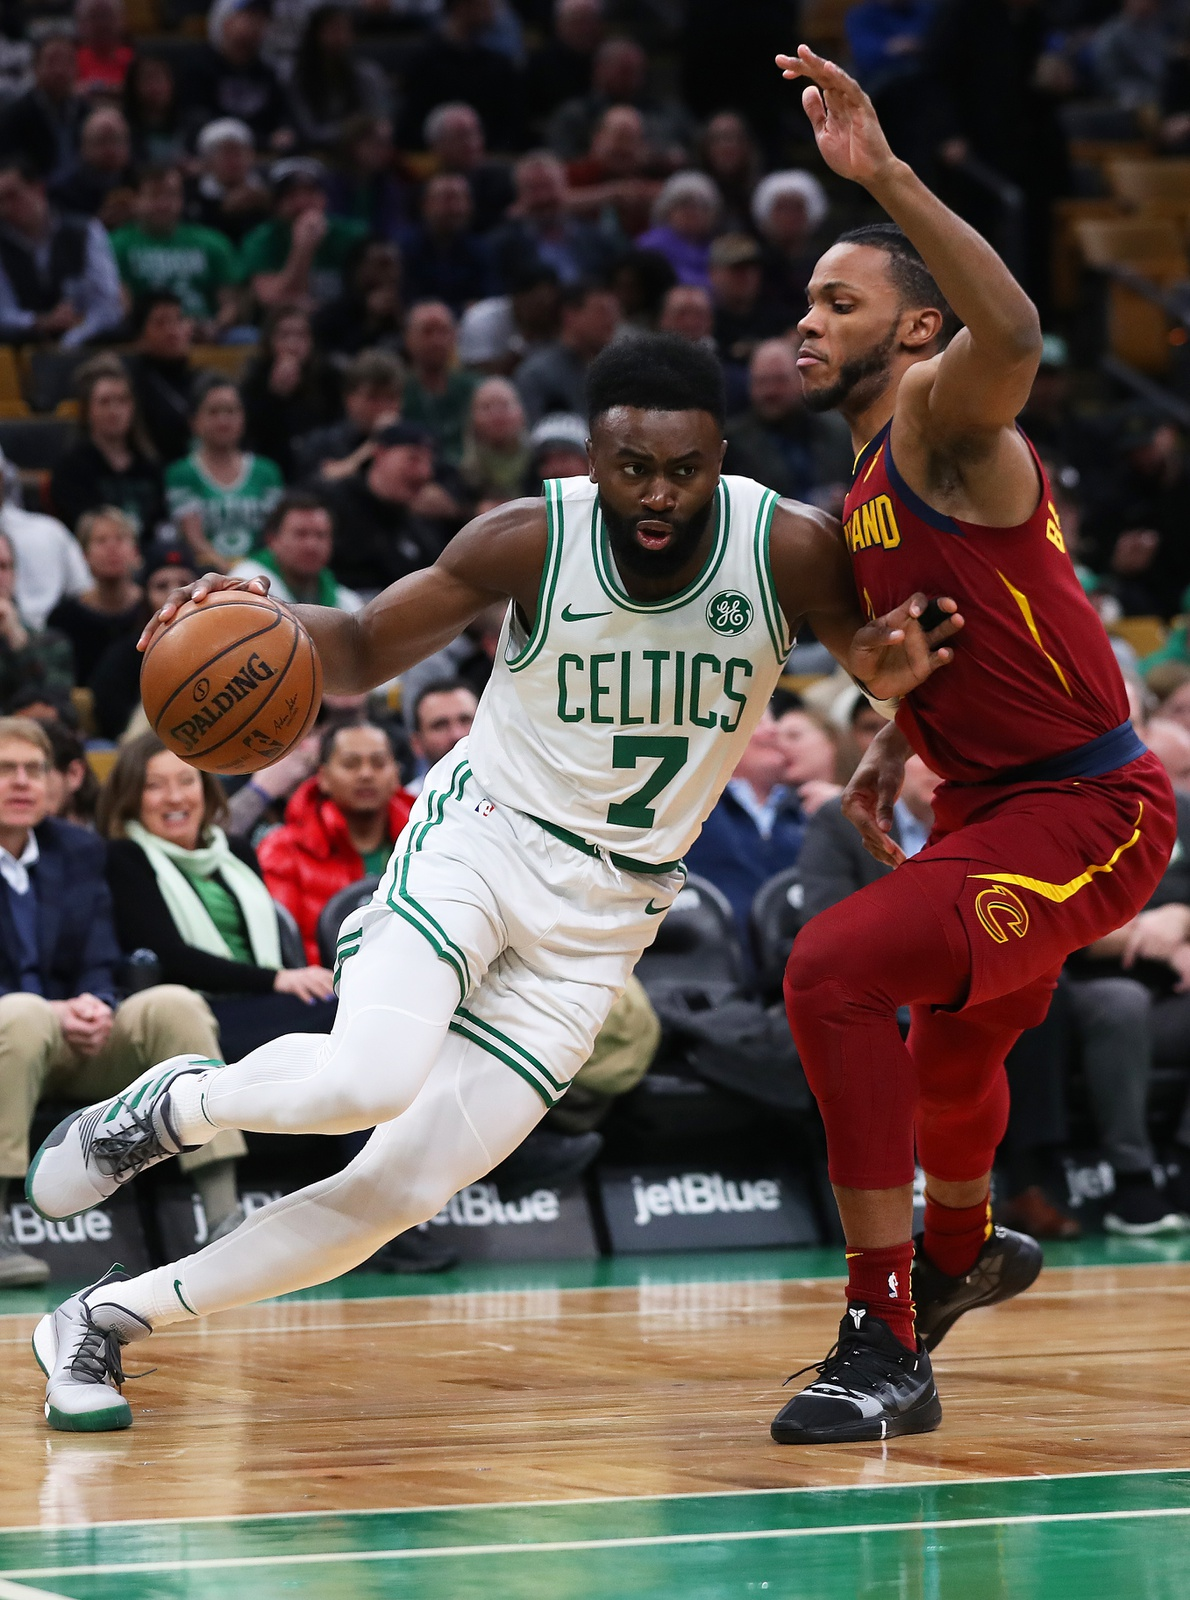 Jaylen Brown #7 of the Boston Celtics drives against Jaron Blossomgame #4 of the Cleveland Cavaliers during the first half at TD Garden on January 23, 2019 in Boston, Massachusetts.